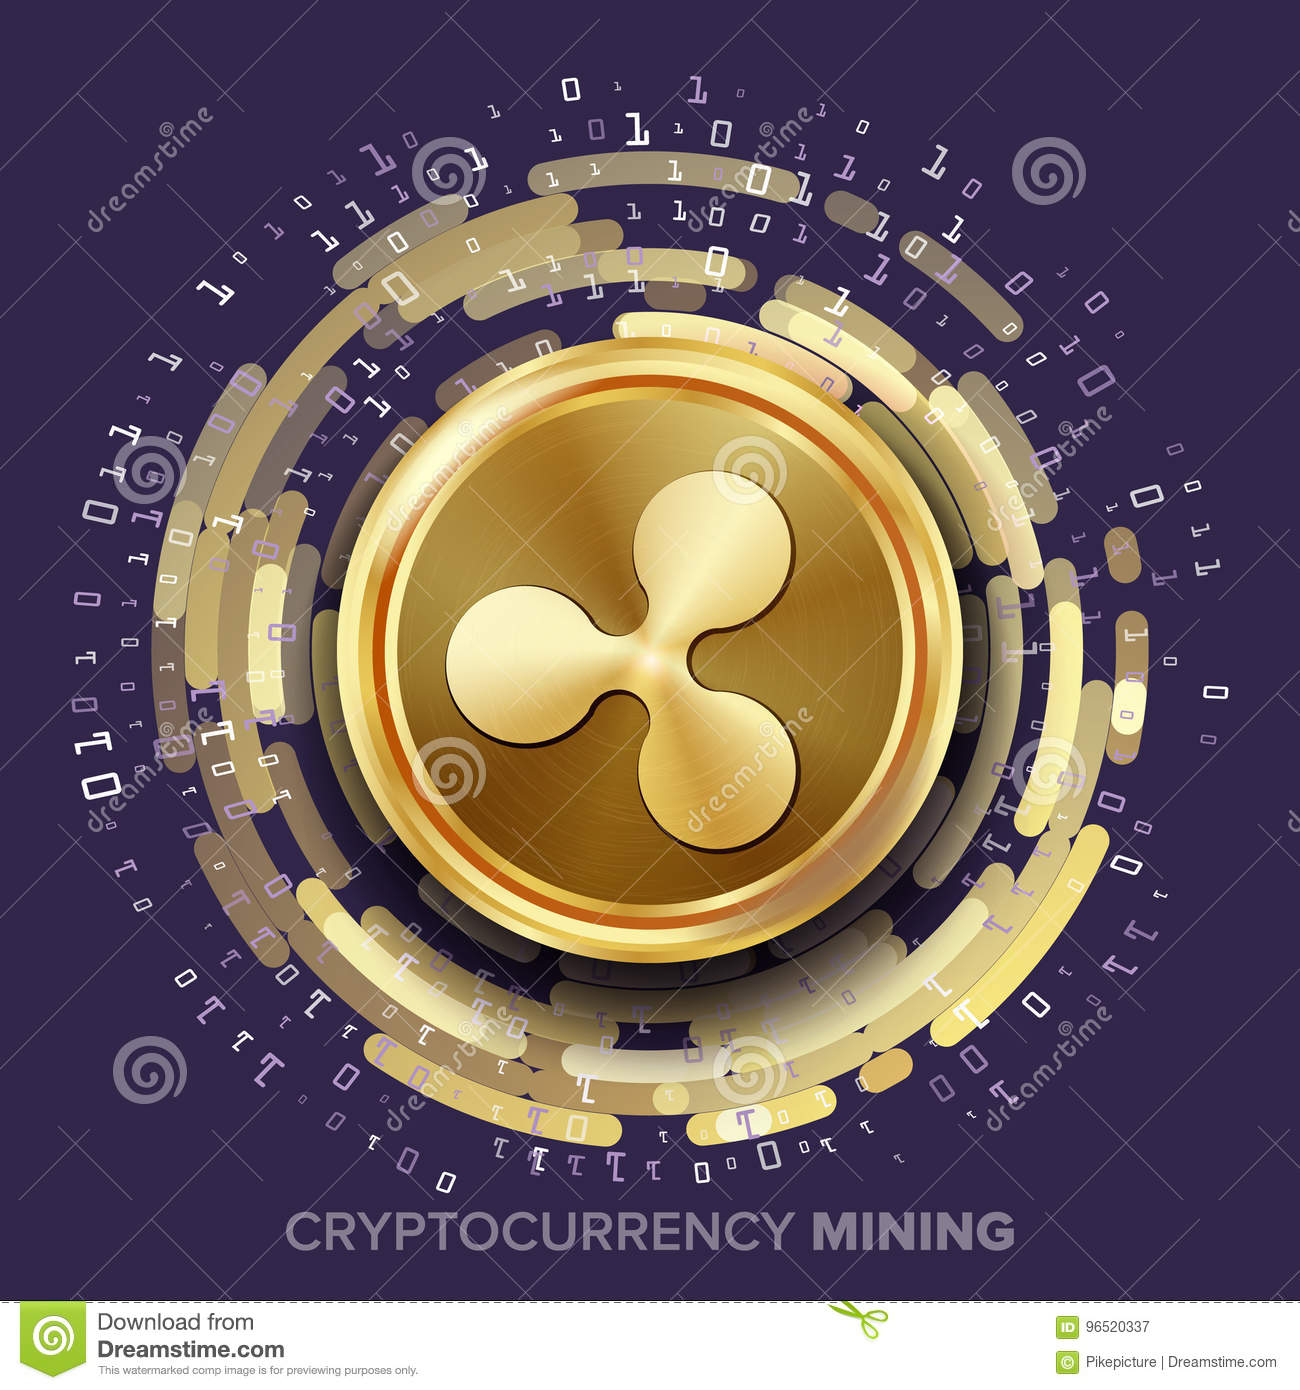 ripple cryptocurrency mining